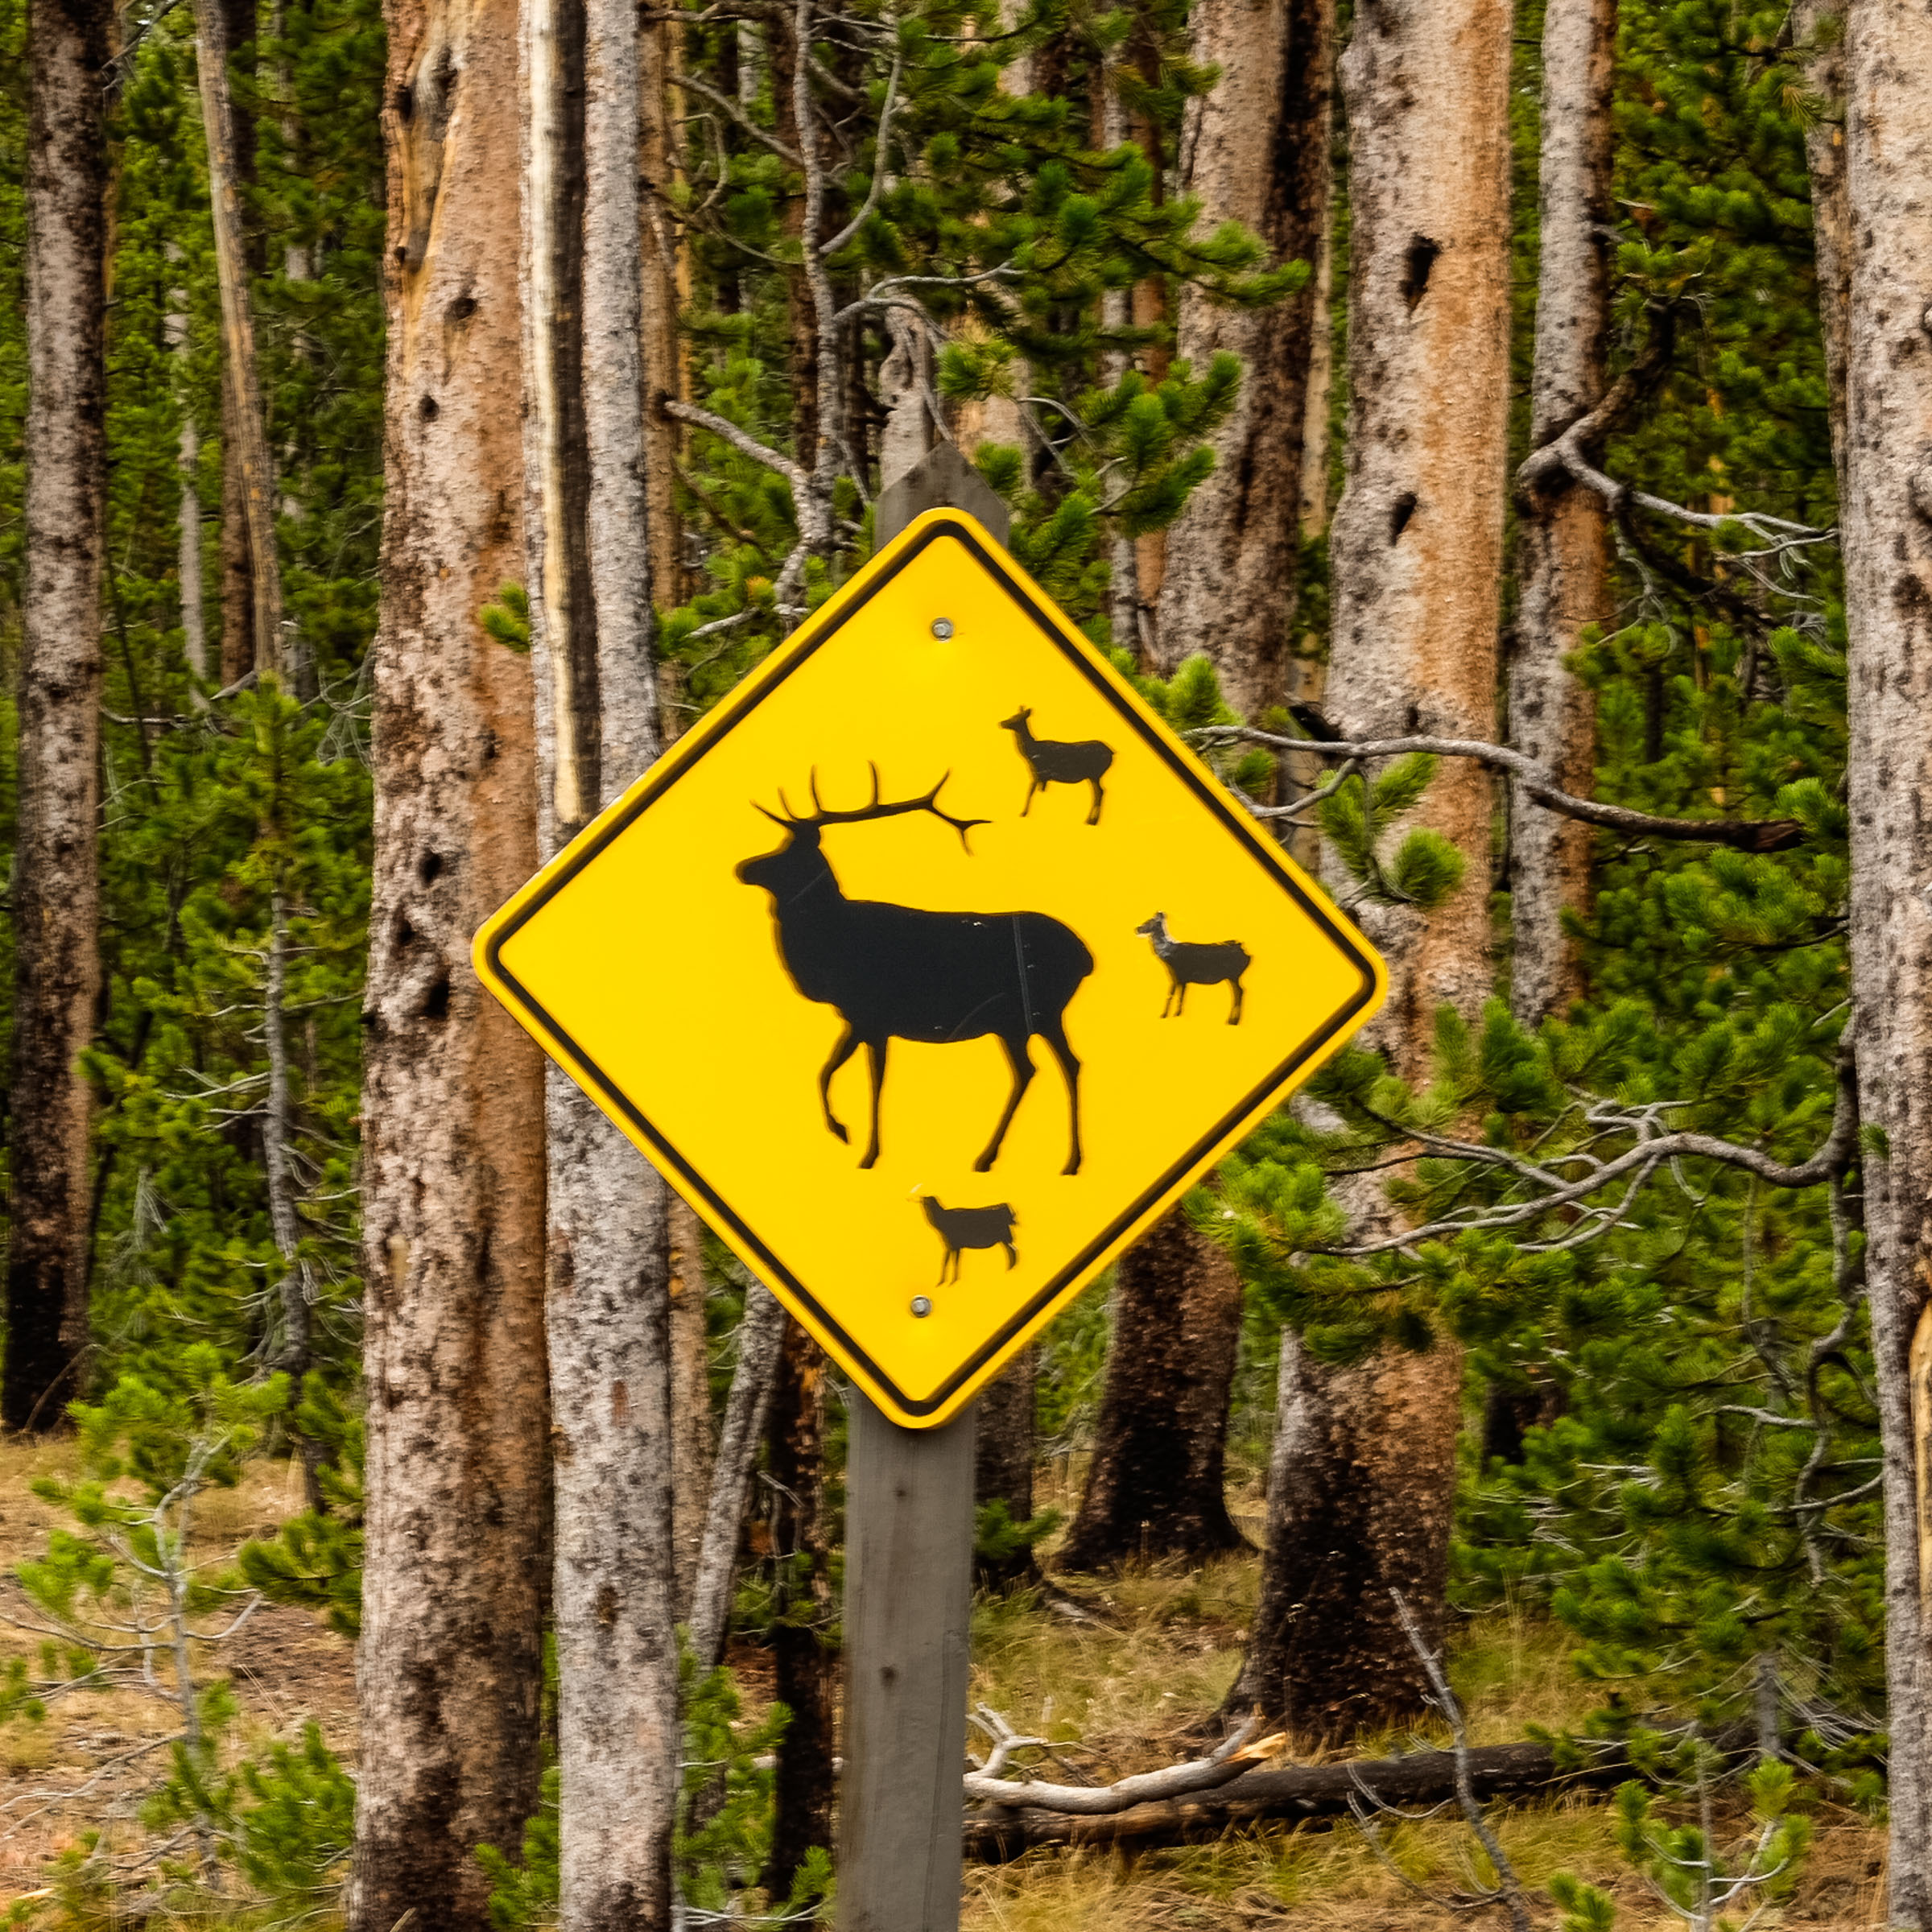 20160923-SP-Yellowstone National Park-_DSF7502.jpg